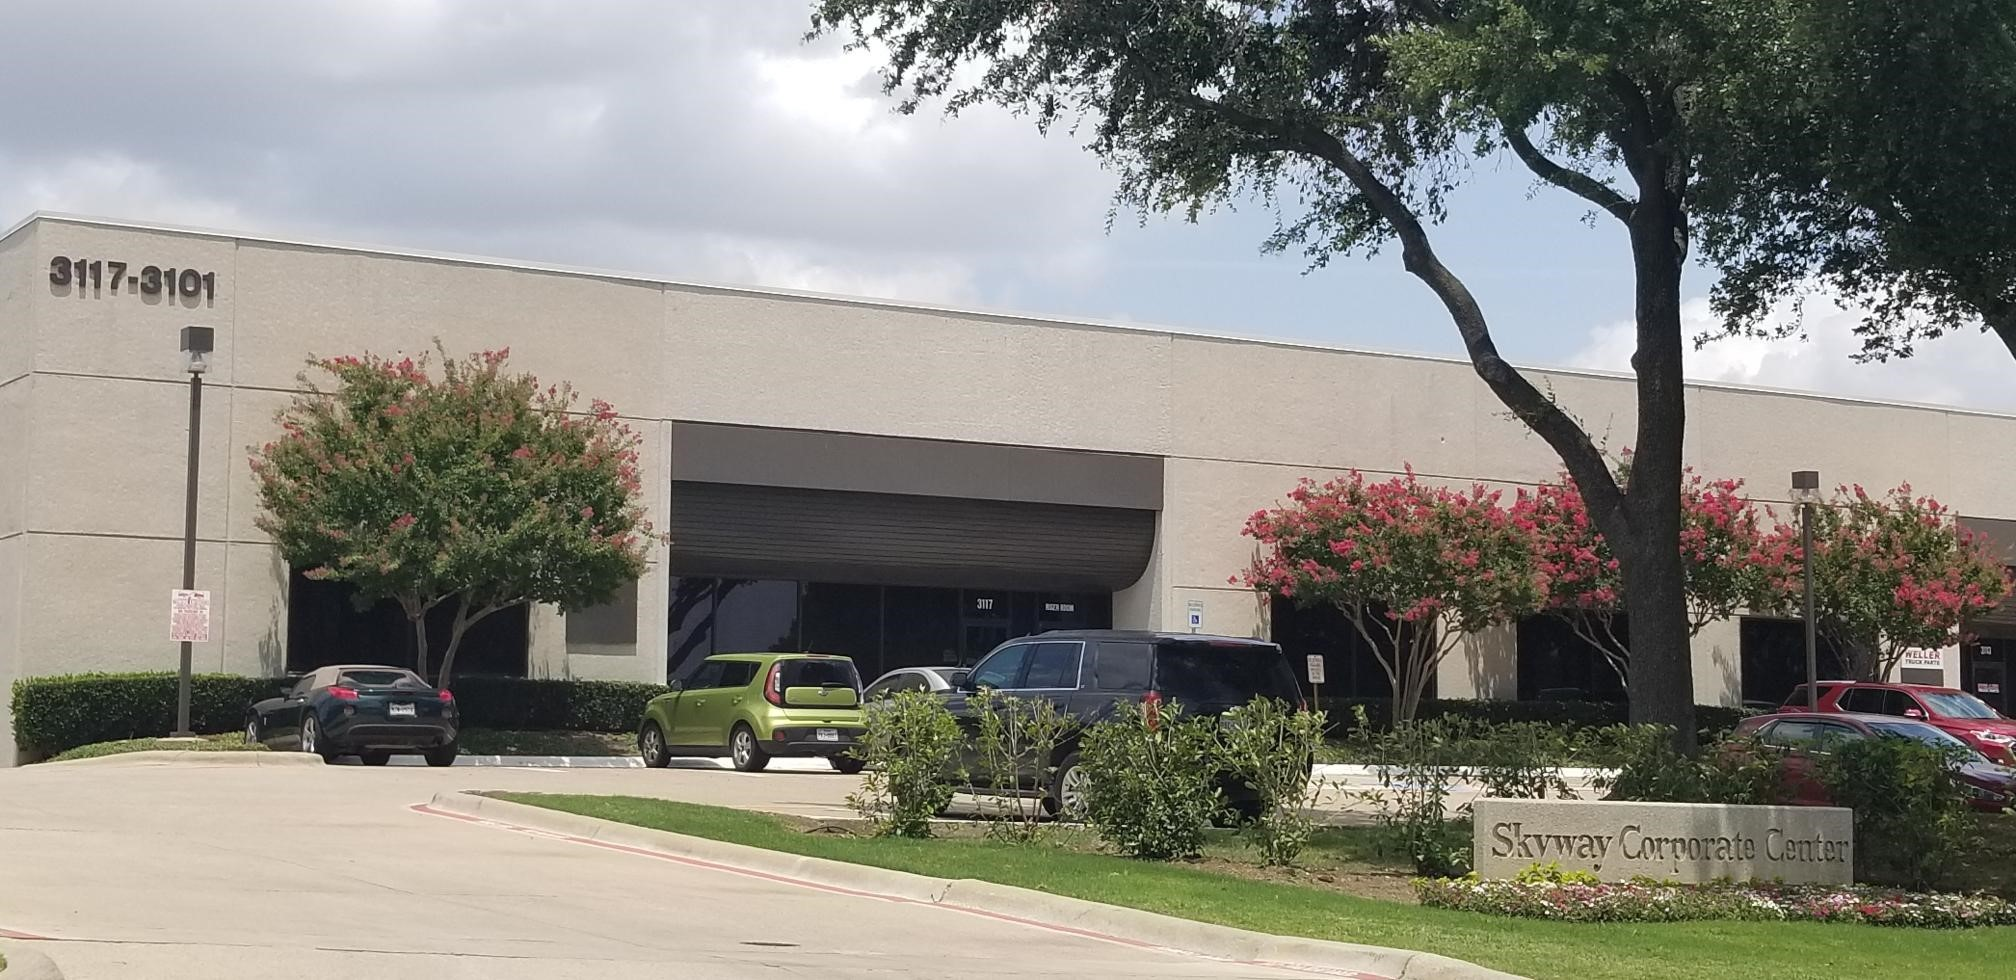 Property: Skyway Corporate Center